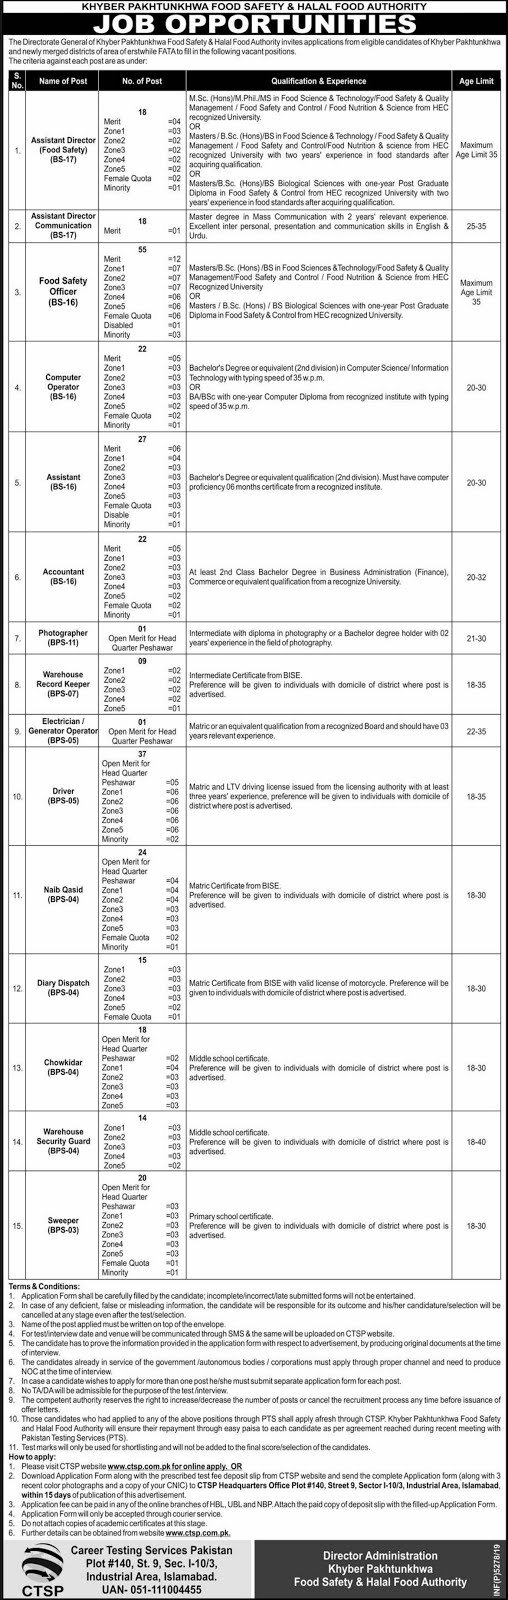 Khyber Pakhtunkhwa Food Safety & Halal Food Authority Jobs January 2020 (301 Posts)